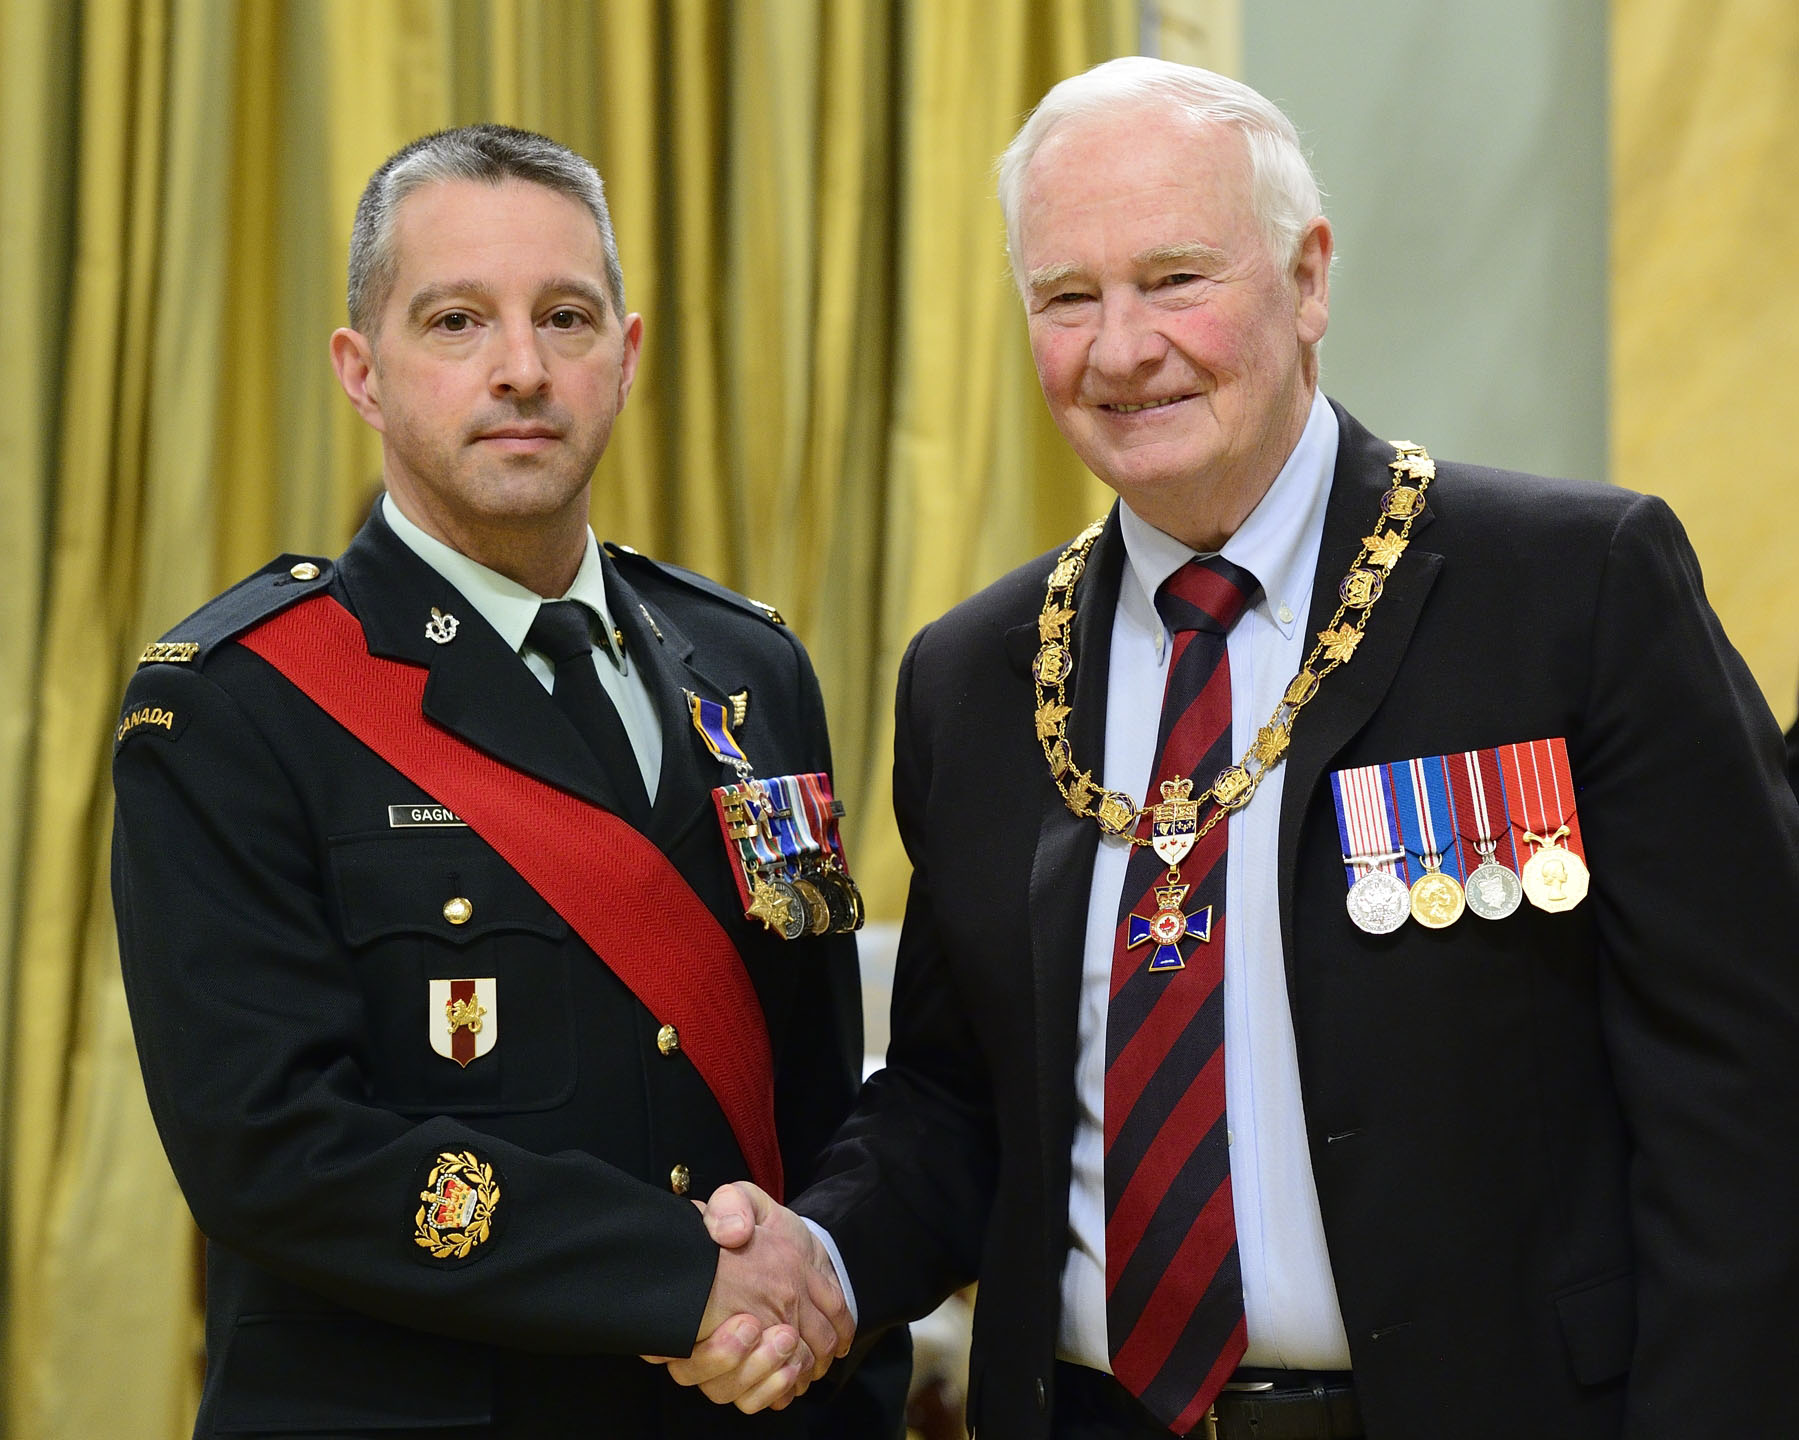 His Excellency presented the Order of Military Merit at the Member level (M.M.M.) to Master Warrant Officer Vincent Ronald Gagnon, M.M.M., C.D., from the Canadian Forces Leadership and Recruit School in Richelain, Quebec.